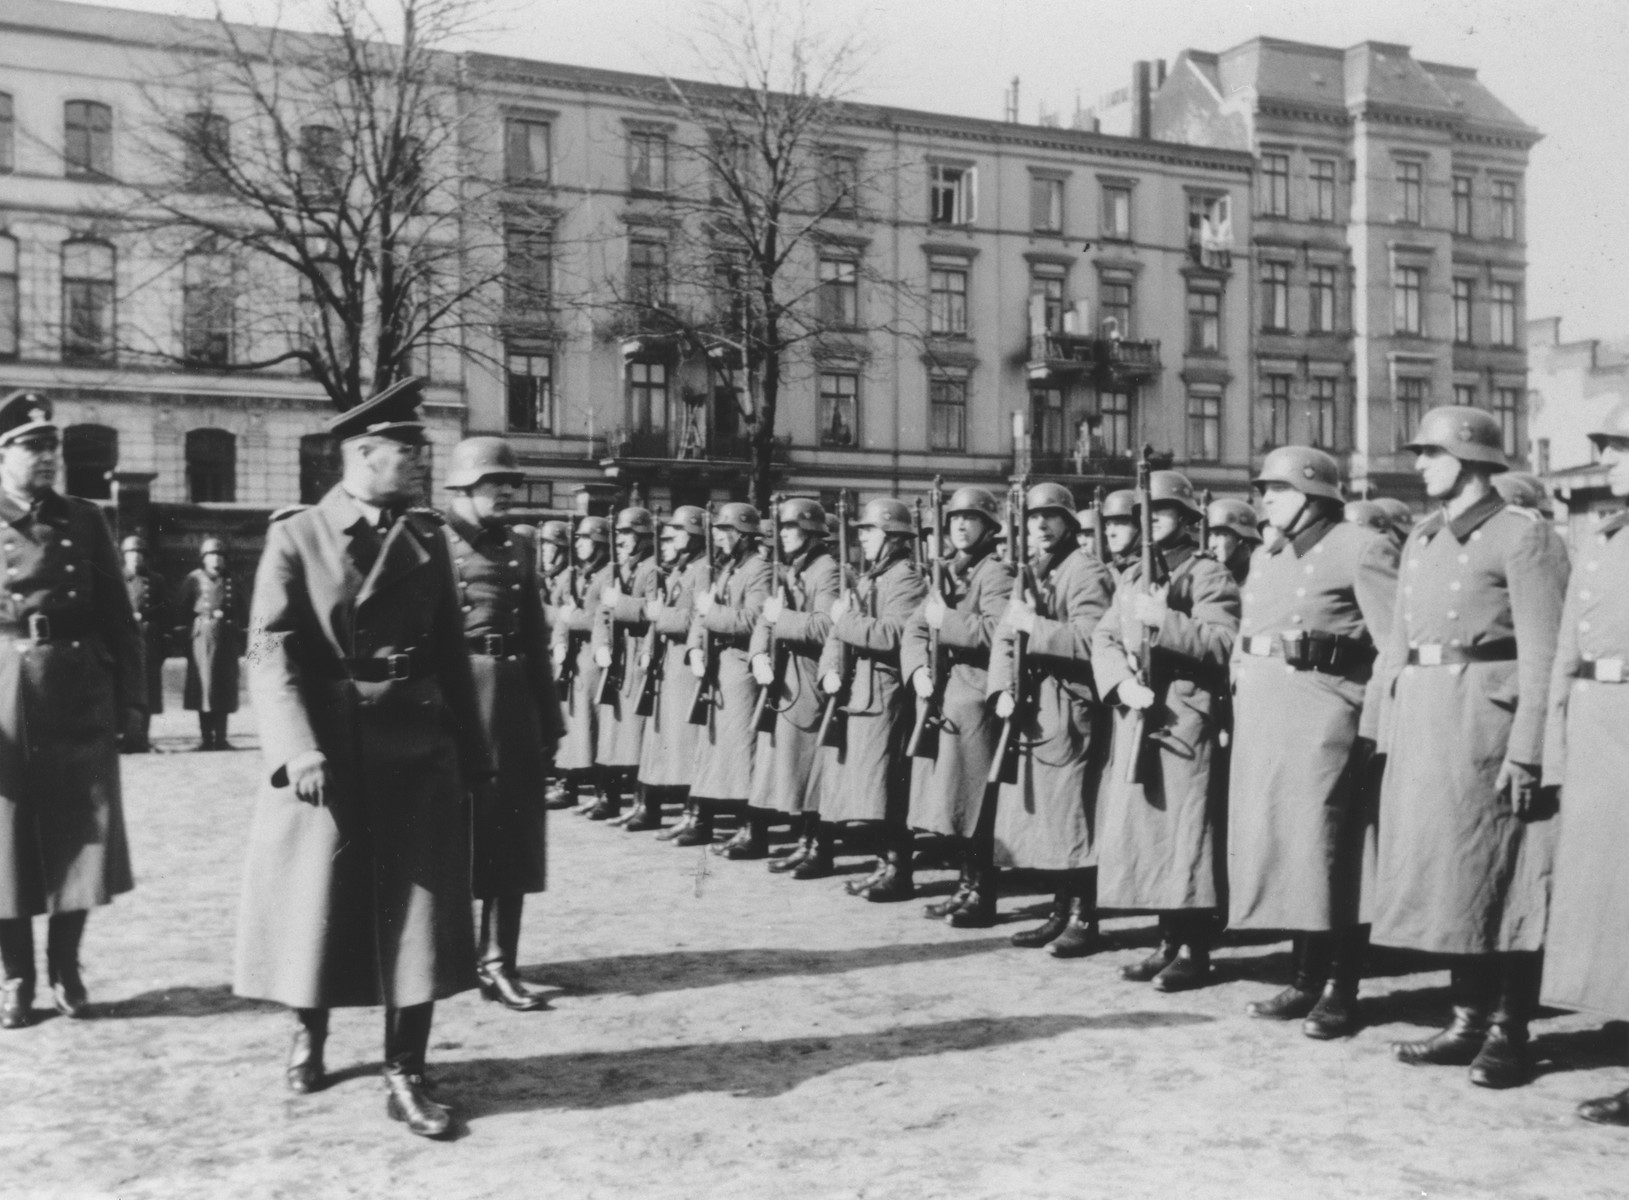 Inspection of members of Police Battalion 101 by their order police officers in a public square in Lodz.   One image from a photograph album belonging to a member of Police Battalion 101.